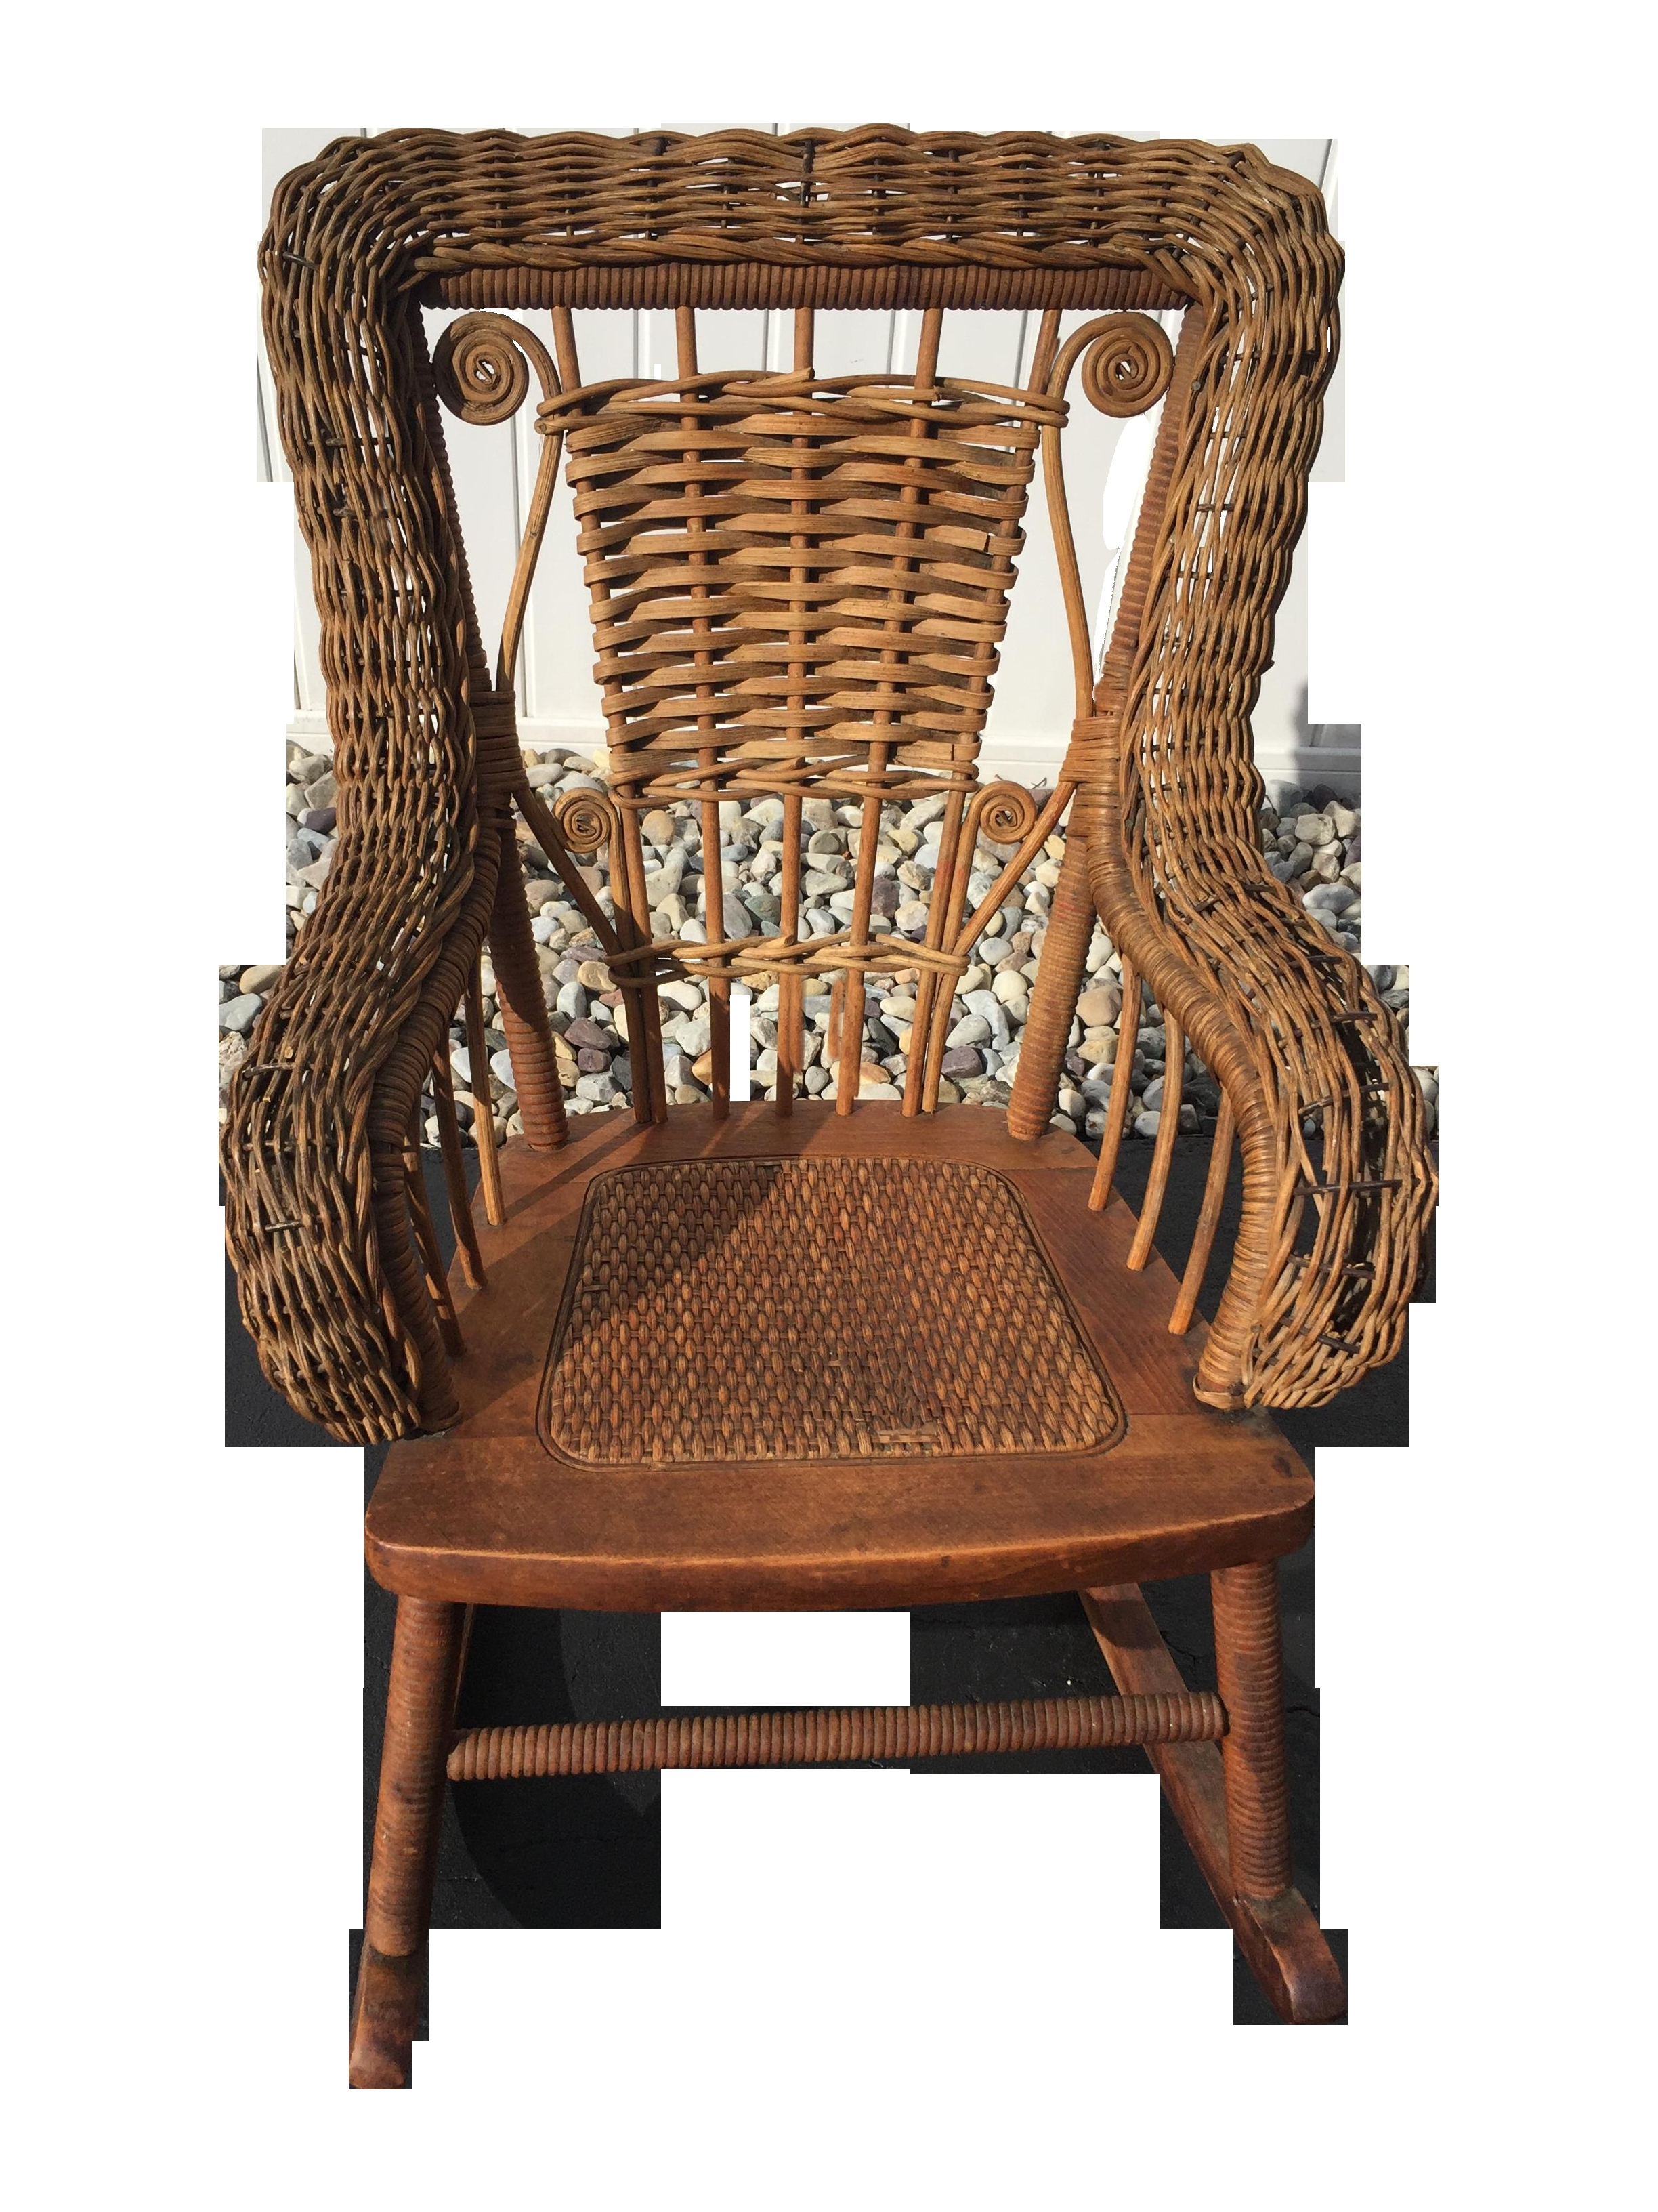 Antique Wicker Furniture Awesome Antique Wicker Rocking Chair Best With Regard To Trendy Antique Wicker Rocking Chairs (View 13 of 15)